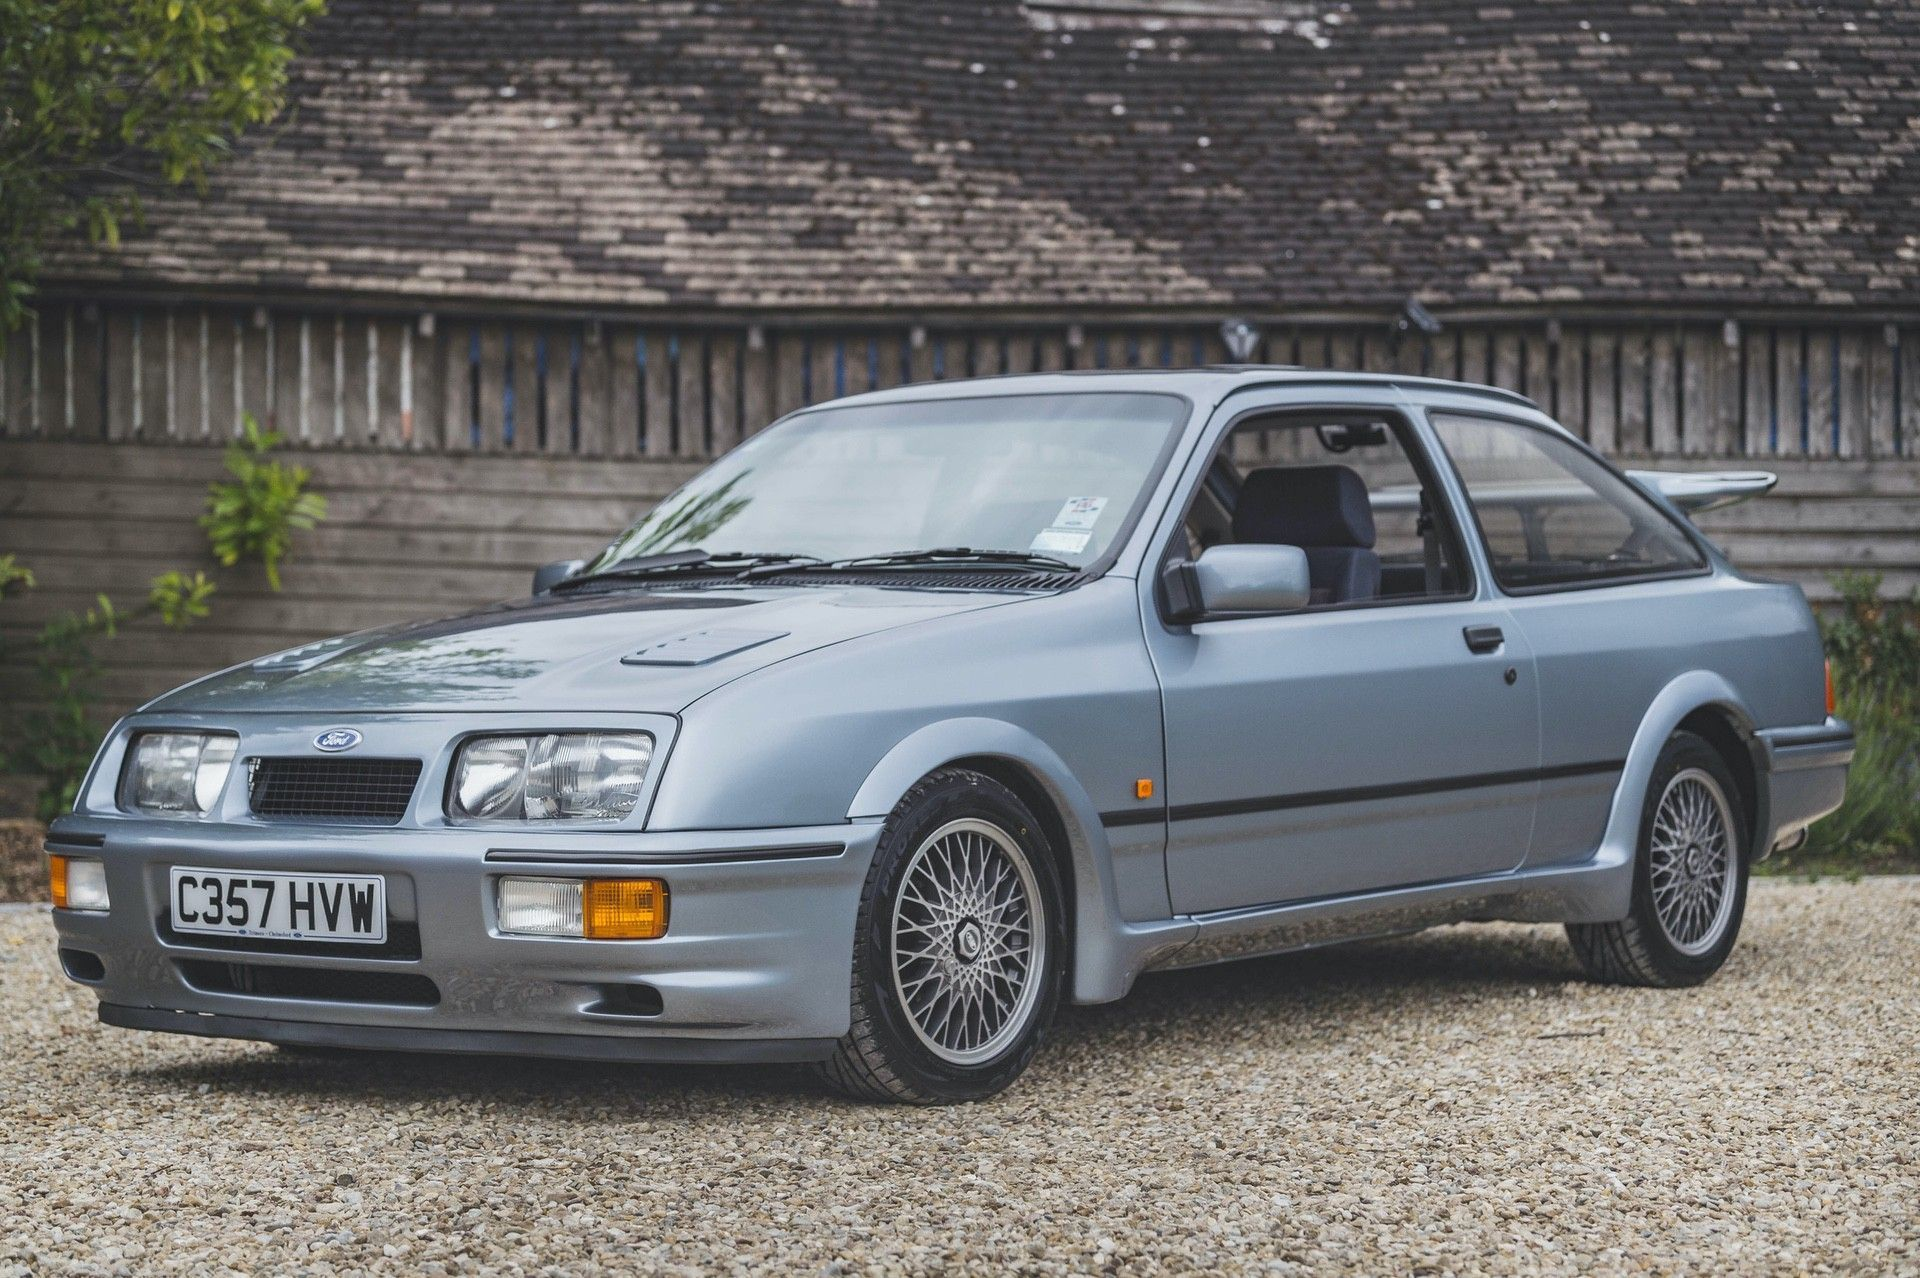 01-1985-Ford-Sierra-RS-Cosworth-Pre-Production